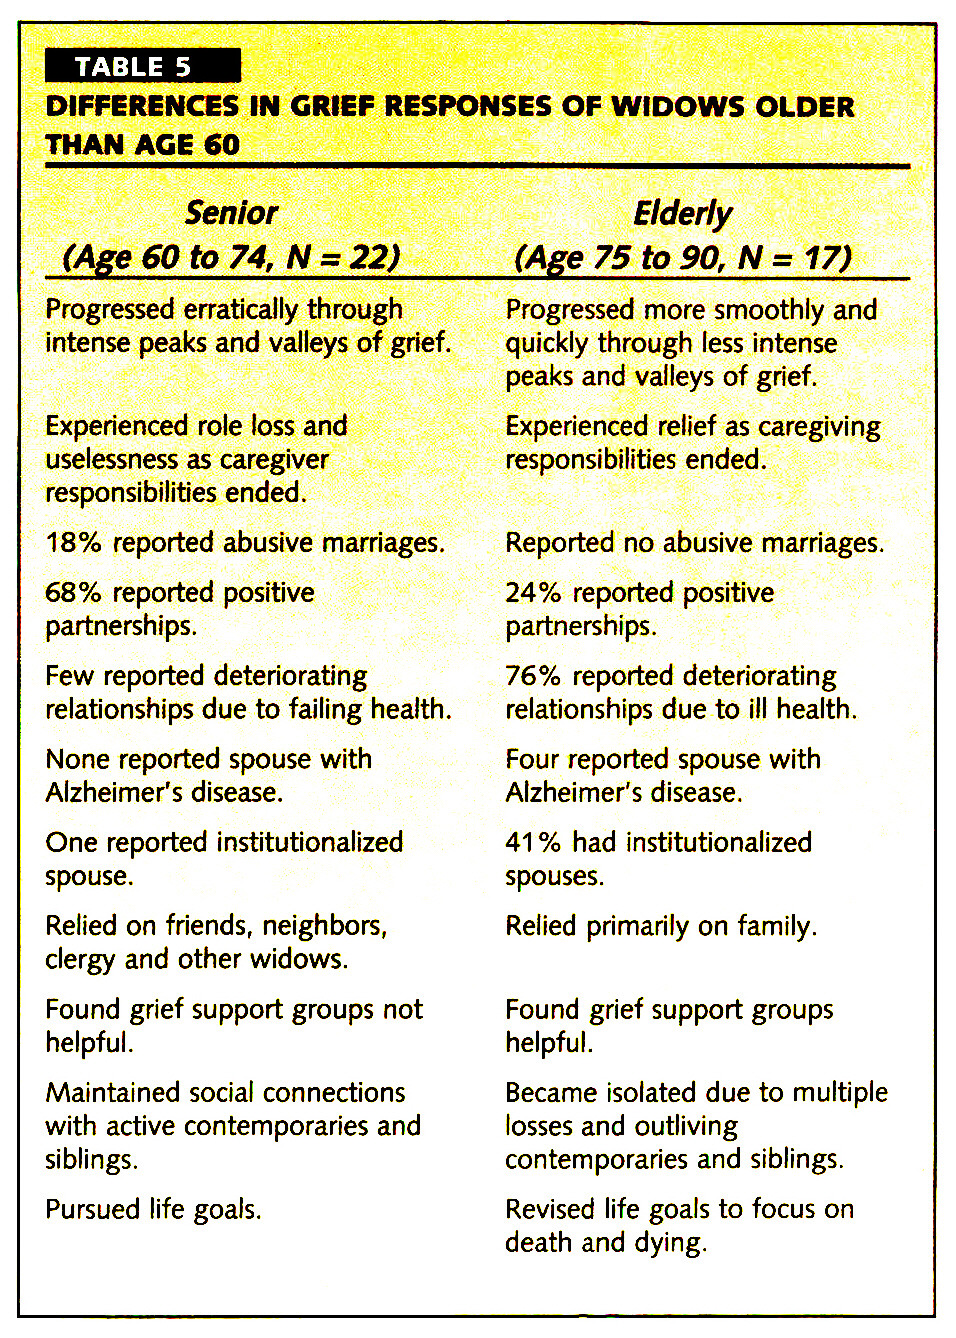 TABLE 5DIFFERENCES IN GRIEF RESPONSES OF WIDOWS OLDER THAN AGE 60